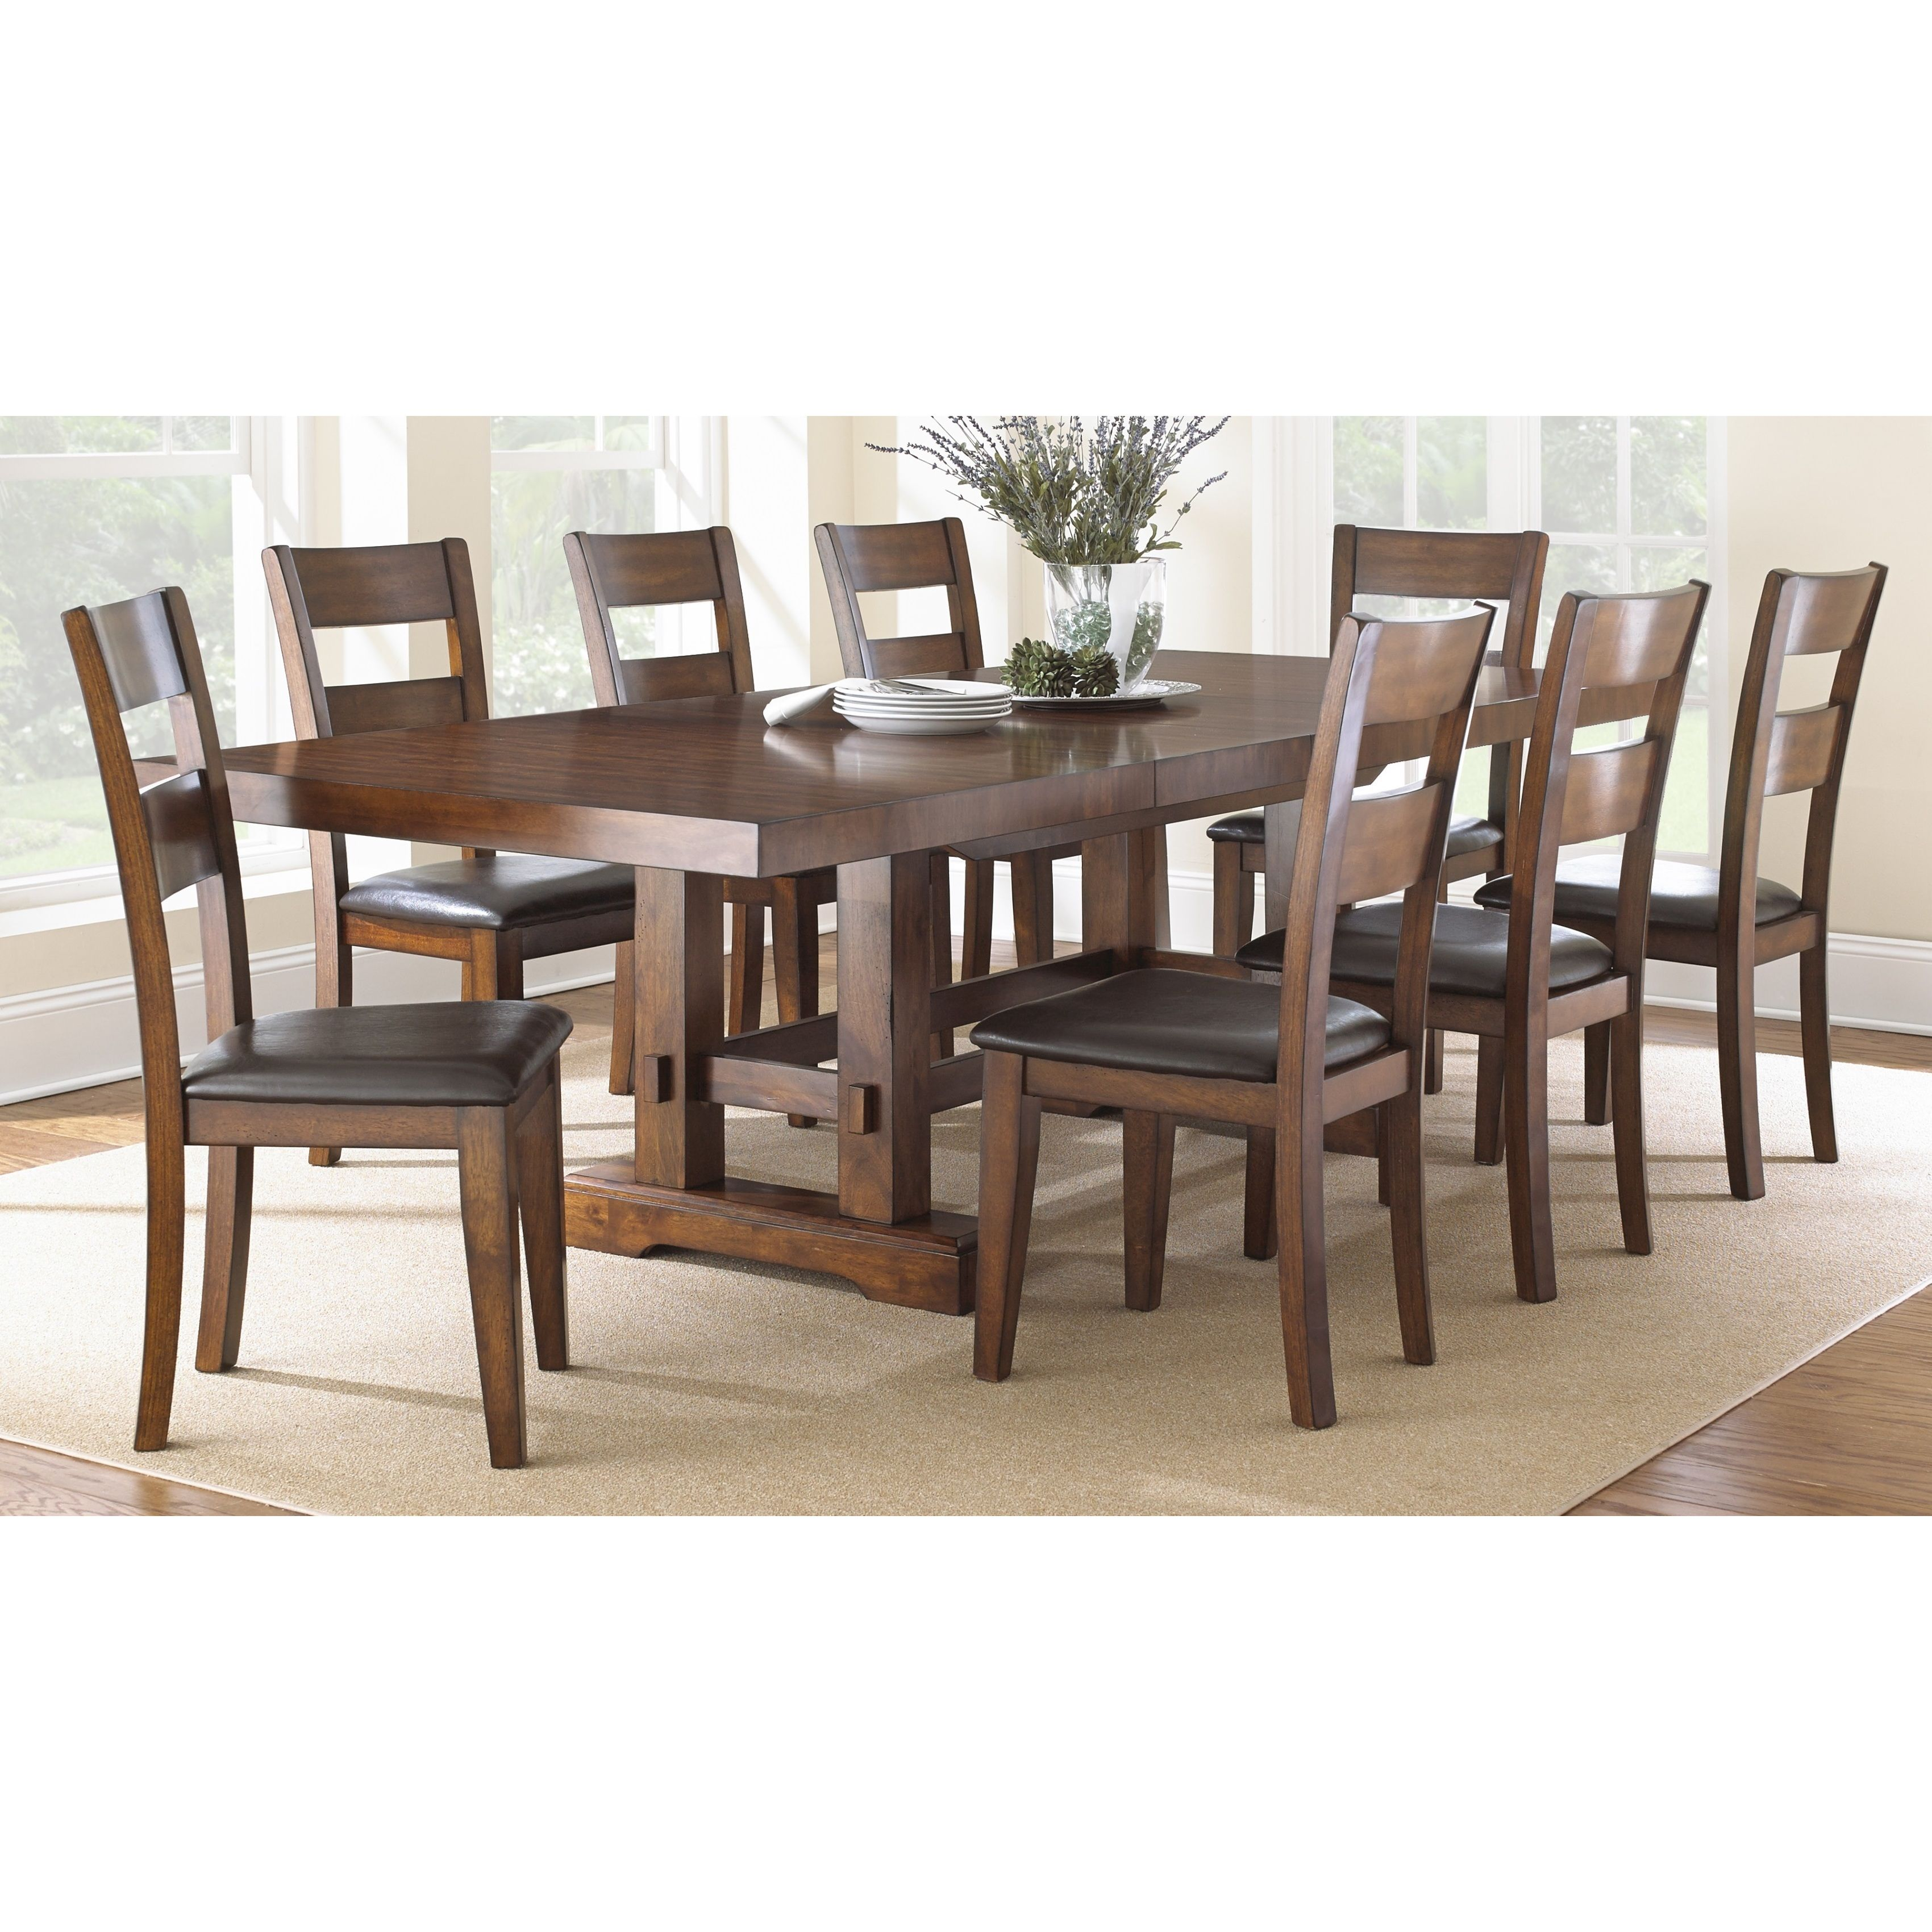 Greyson living denver dining set by greyson living dark for Complete dining room sets